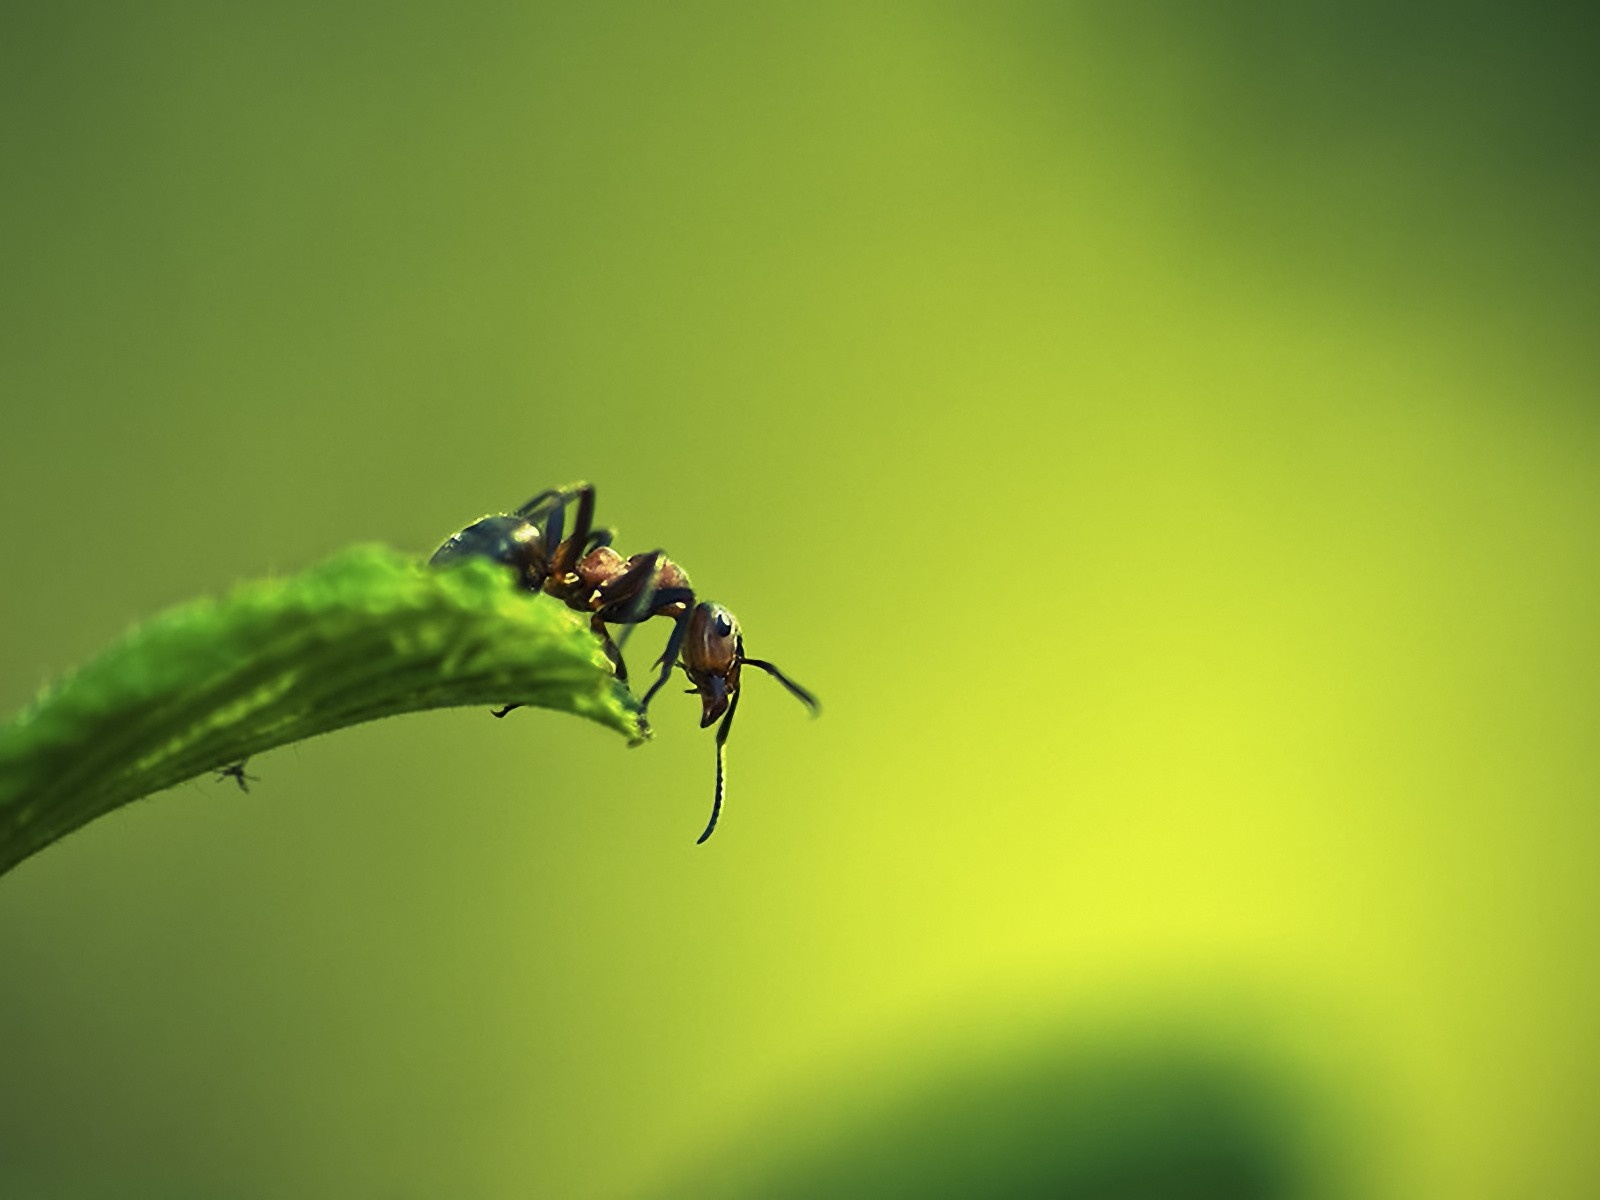 Green And Protective Wallpaper Ant On Grass Much